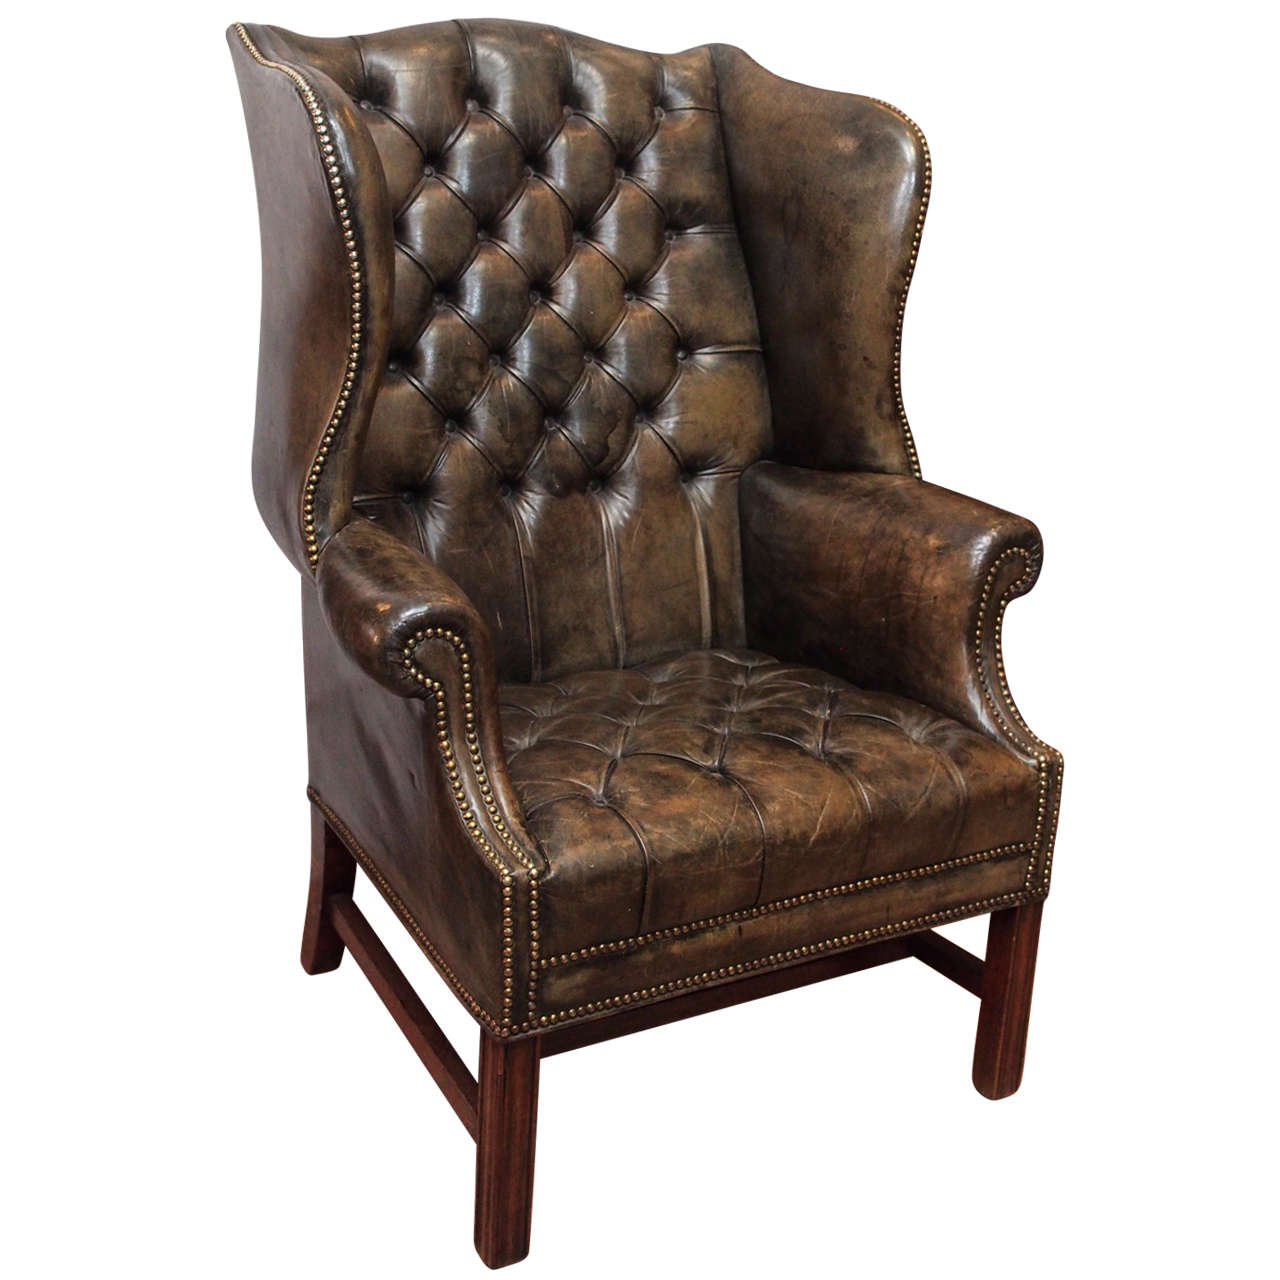 Vintage Chairs Antique English Wing Chair At 1stdibs